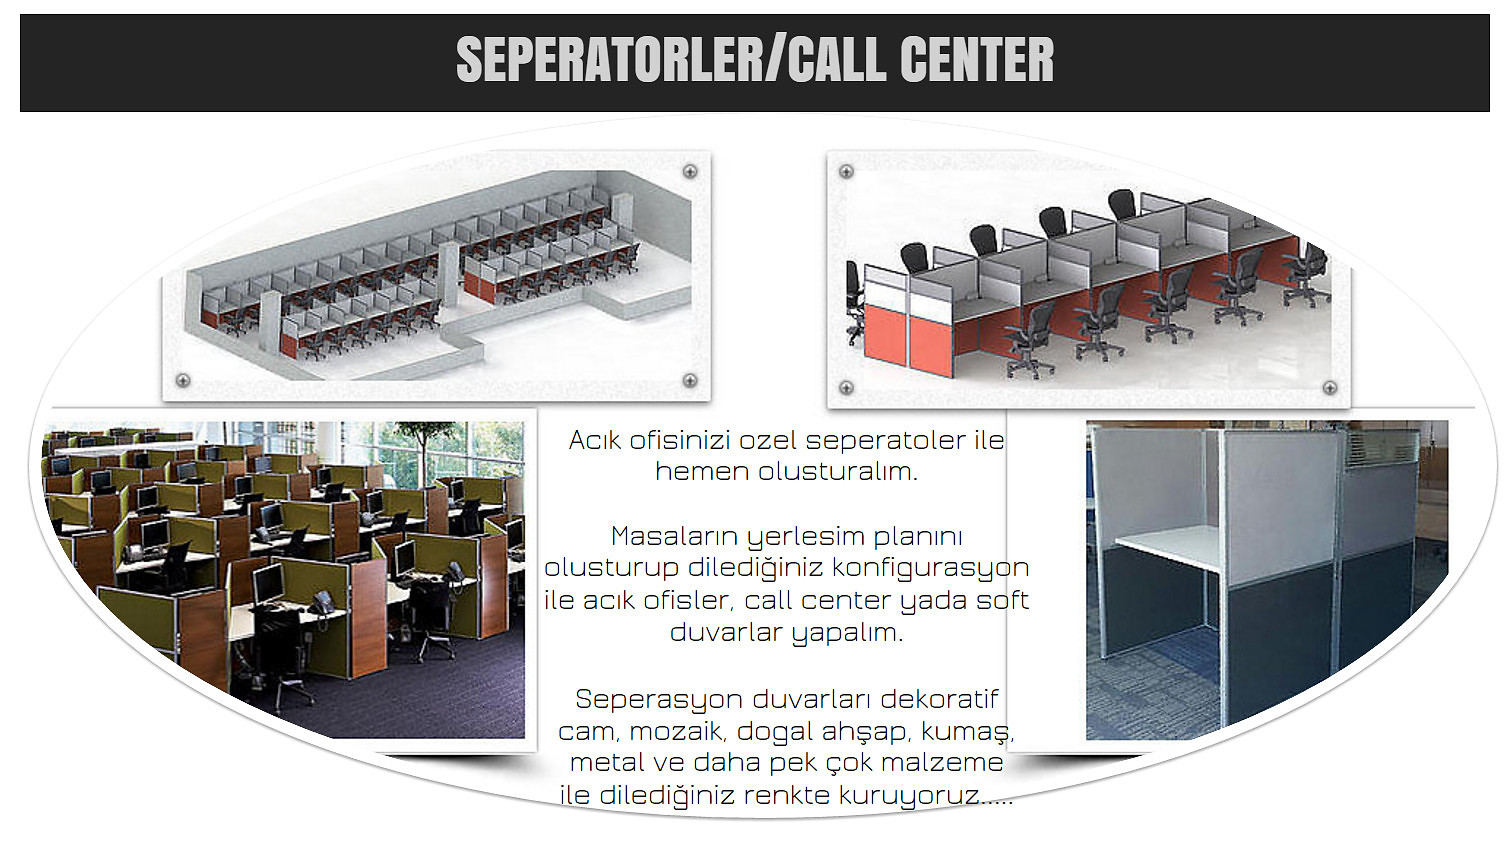 Call Center - Seperation - Regular Table - cover